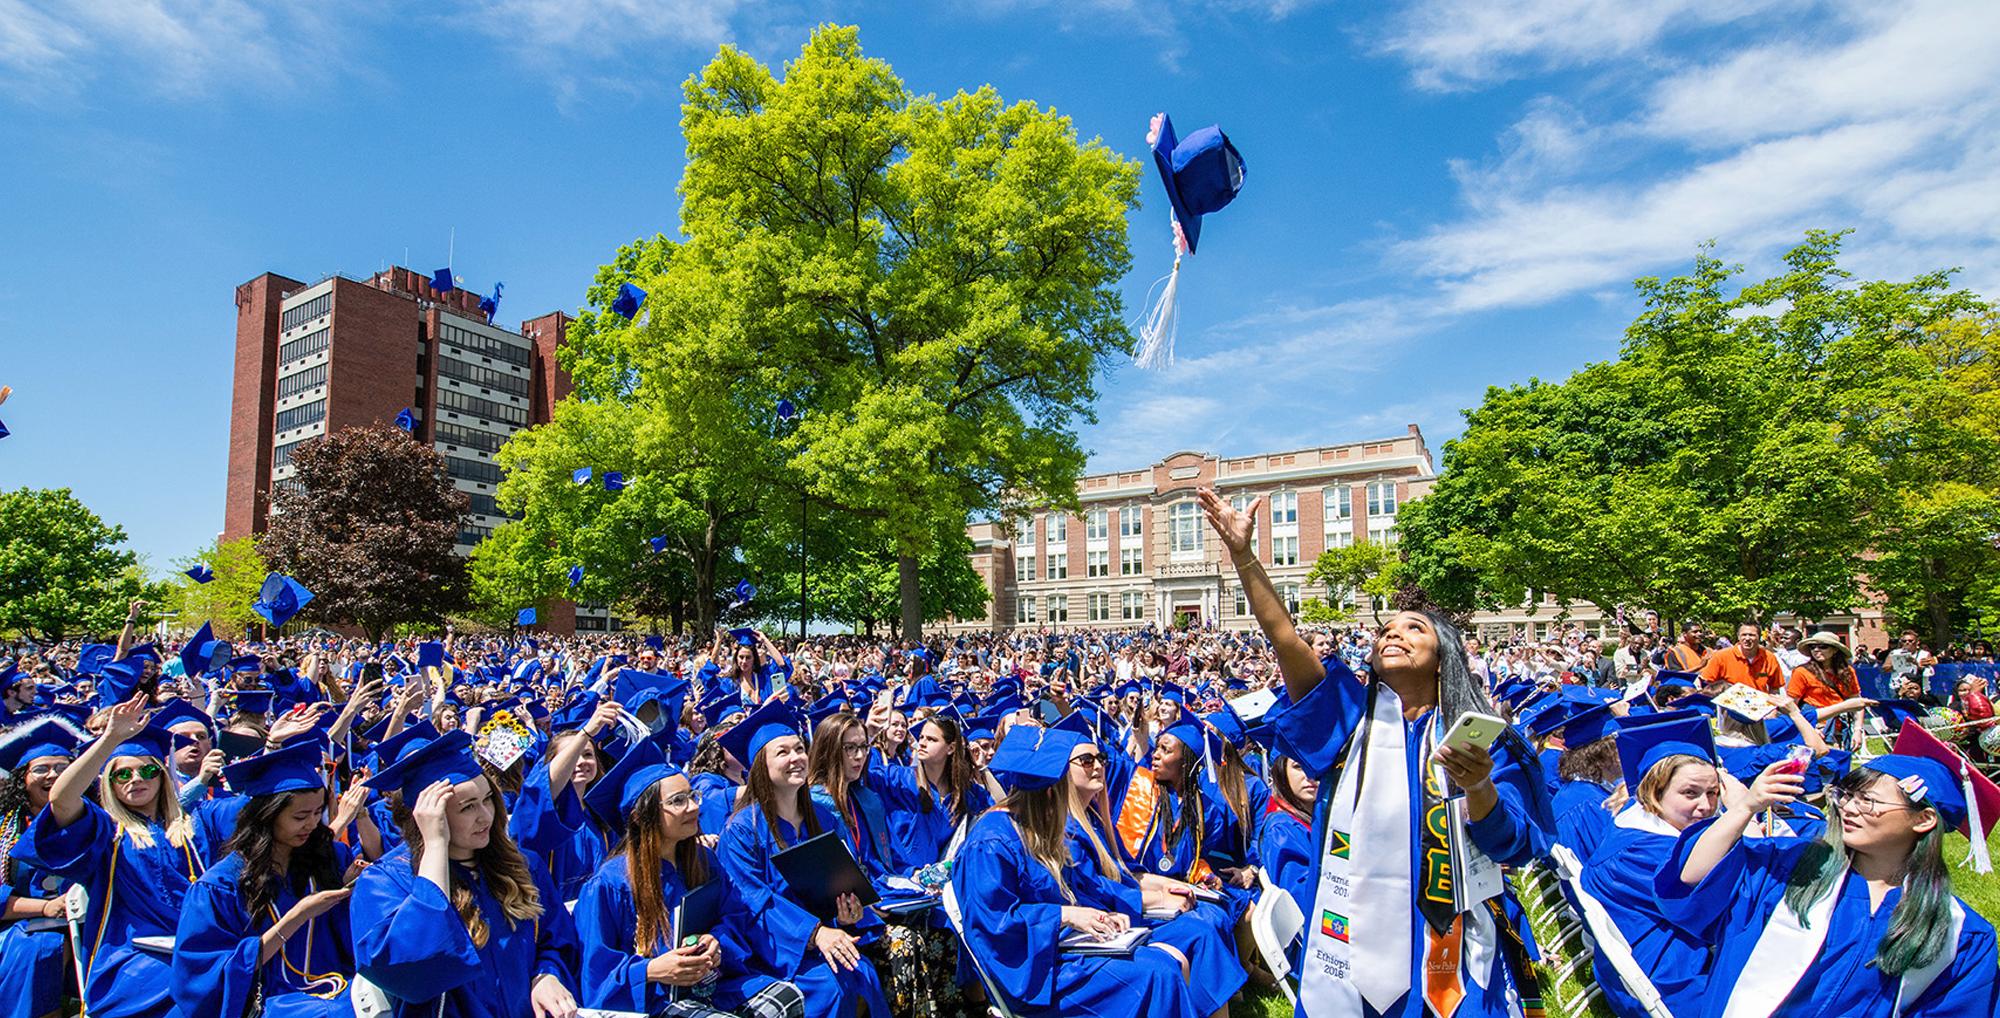 Saturday commencement wide 1 2019